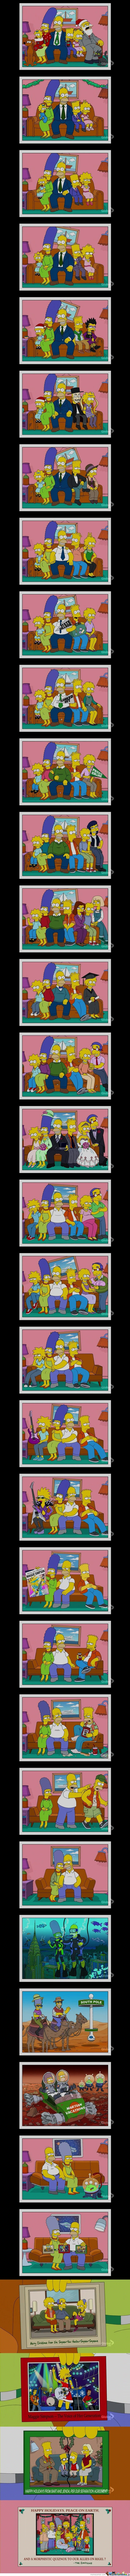 the simpsons time line